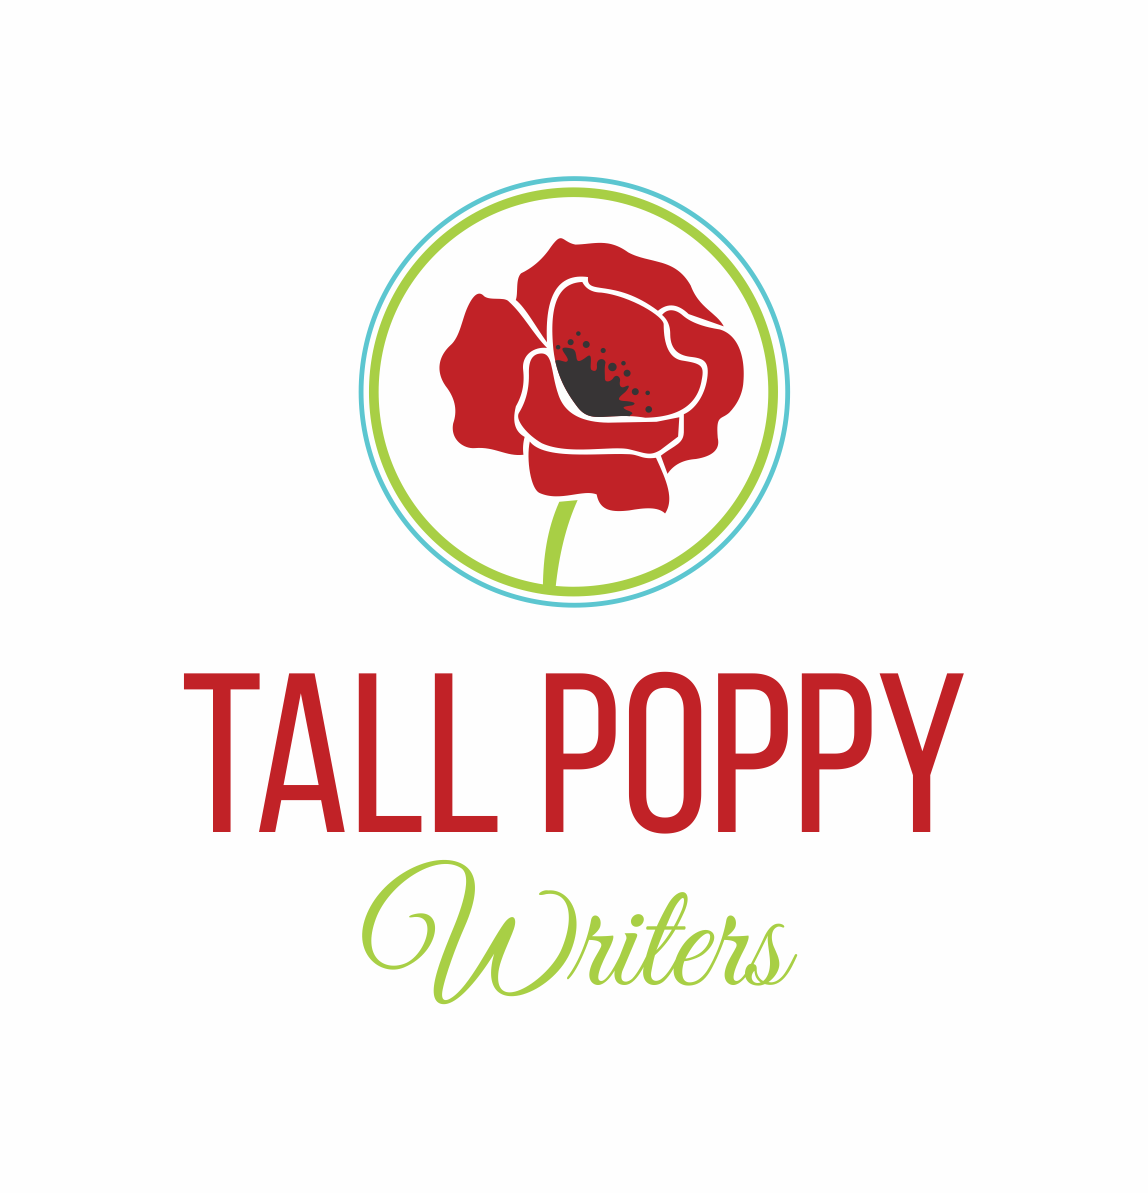 Proud member of The Tall Poppy Writers